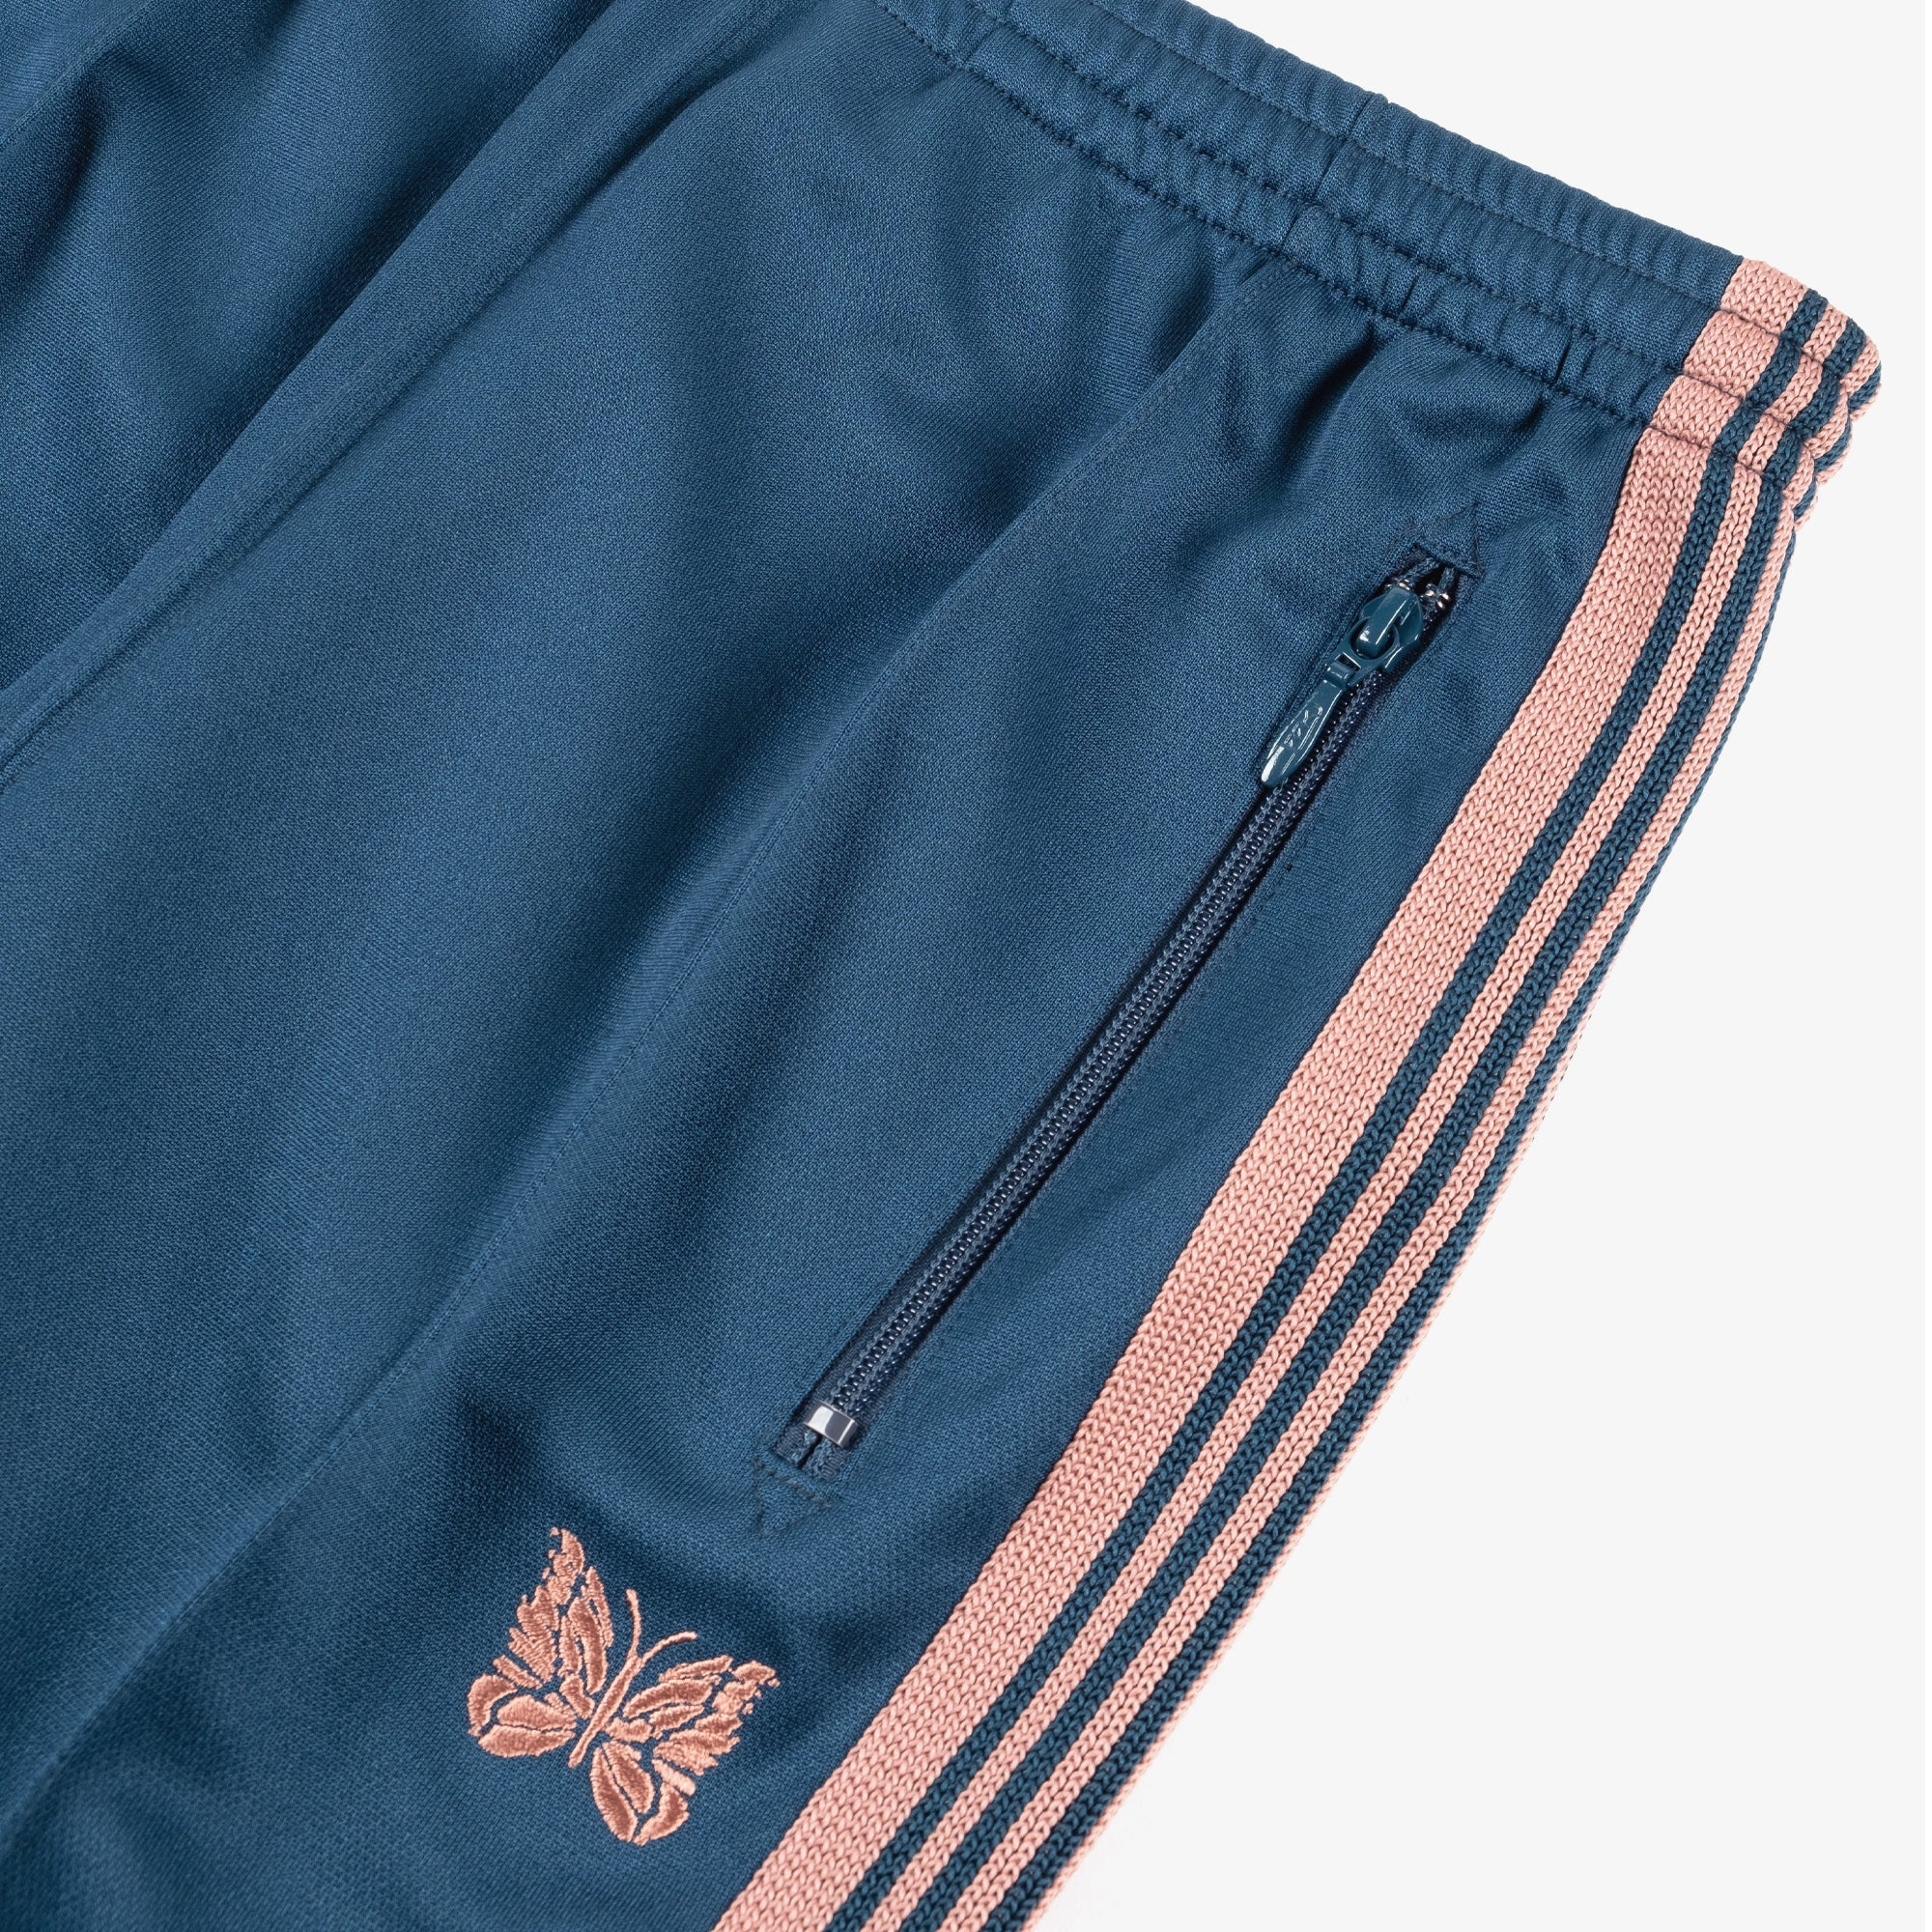 Needles M' Narrow Track Pant - Poly Smooth Teal Green 3